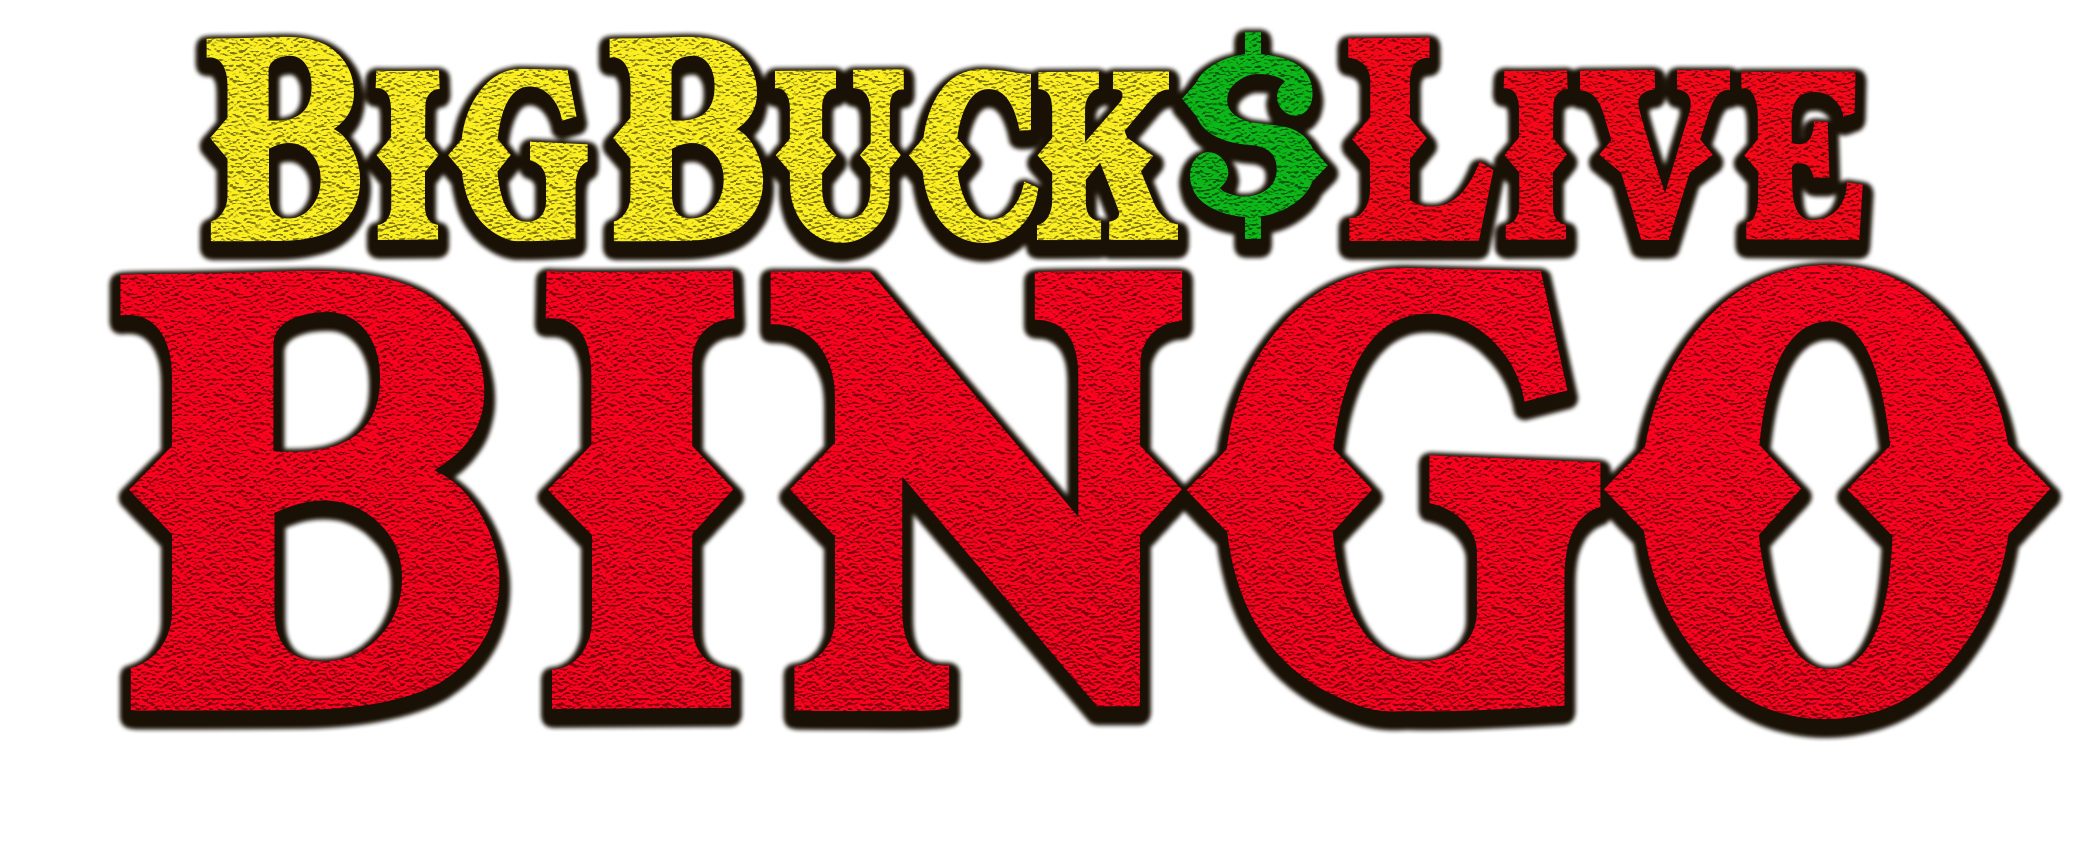 Big Bucks Live Bingo